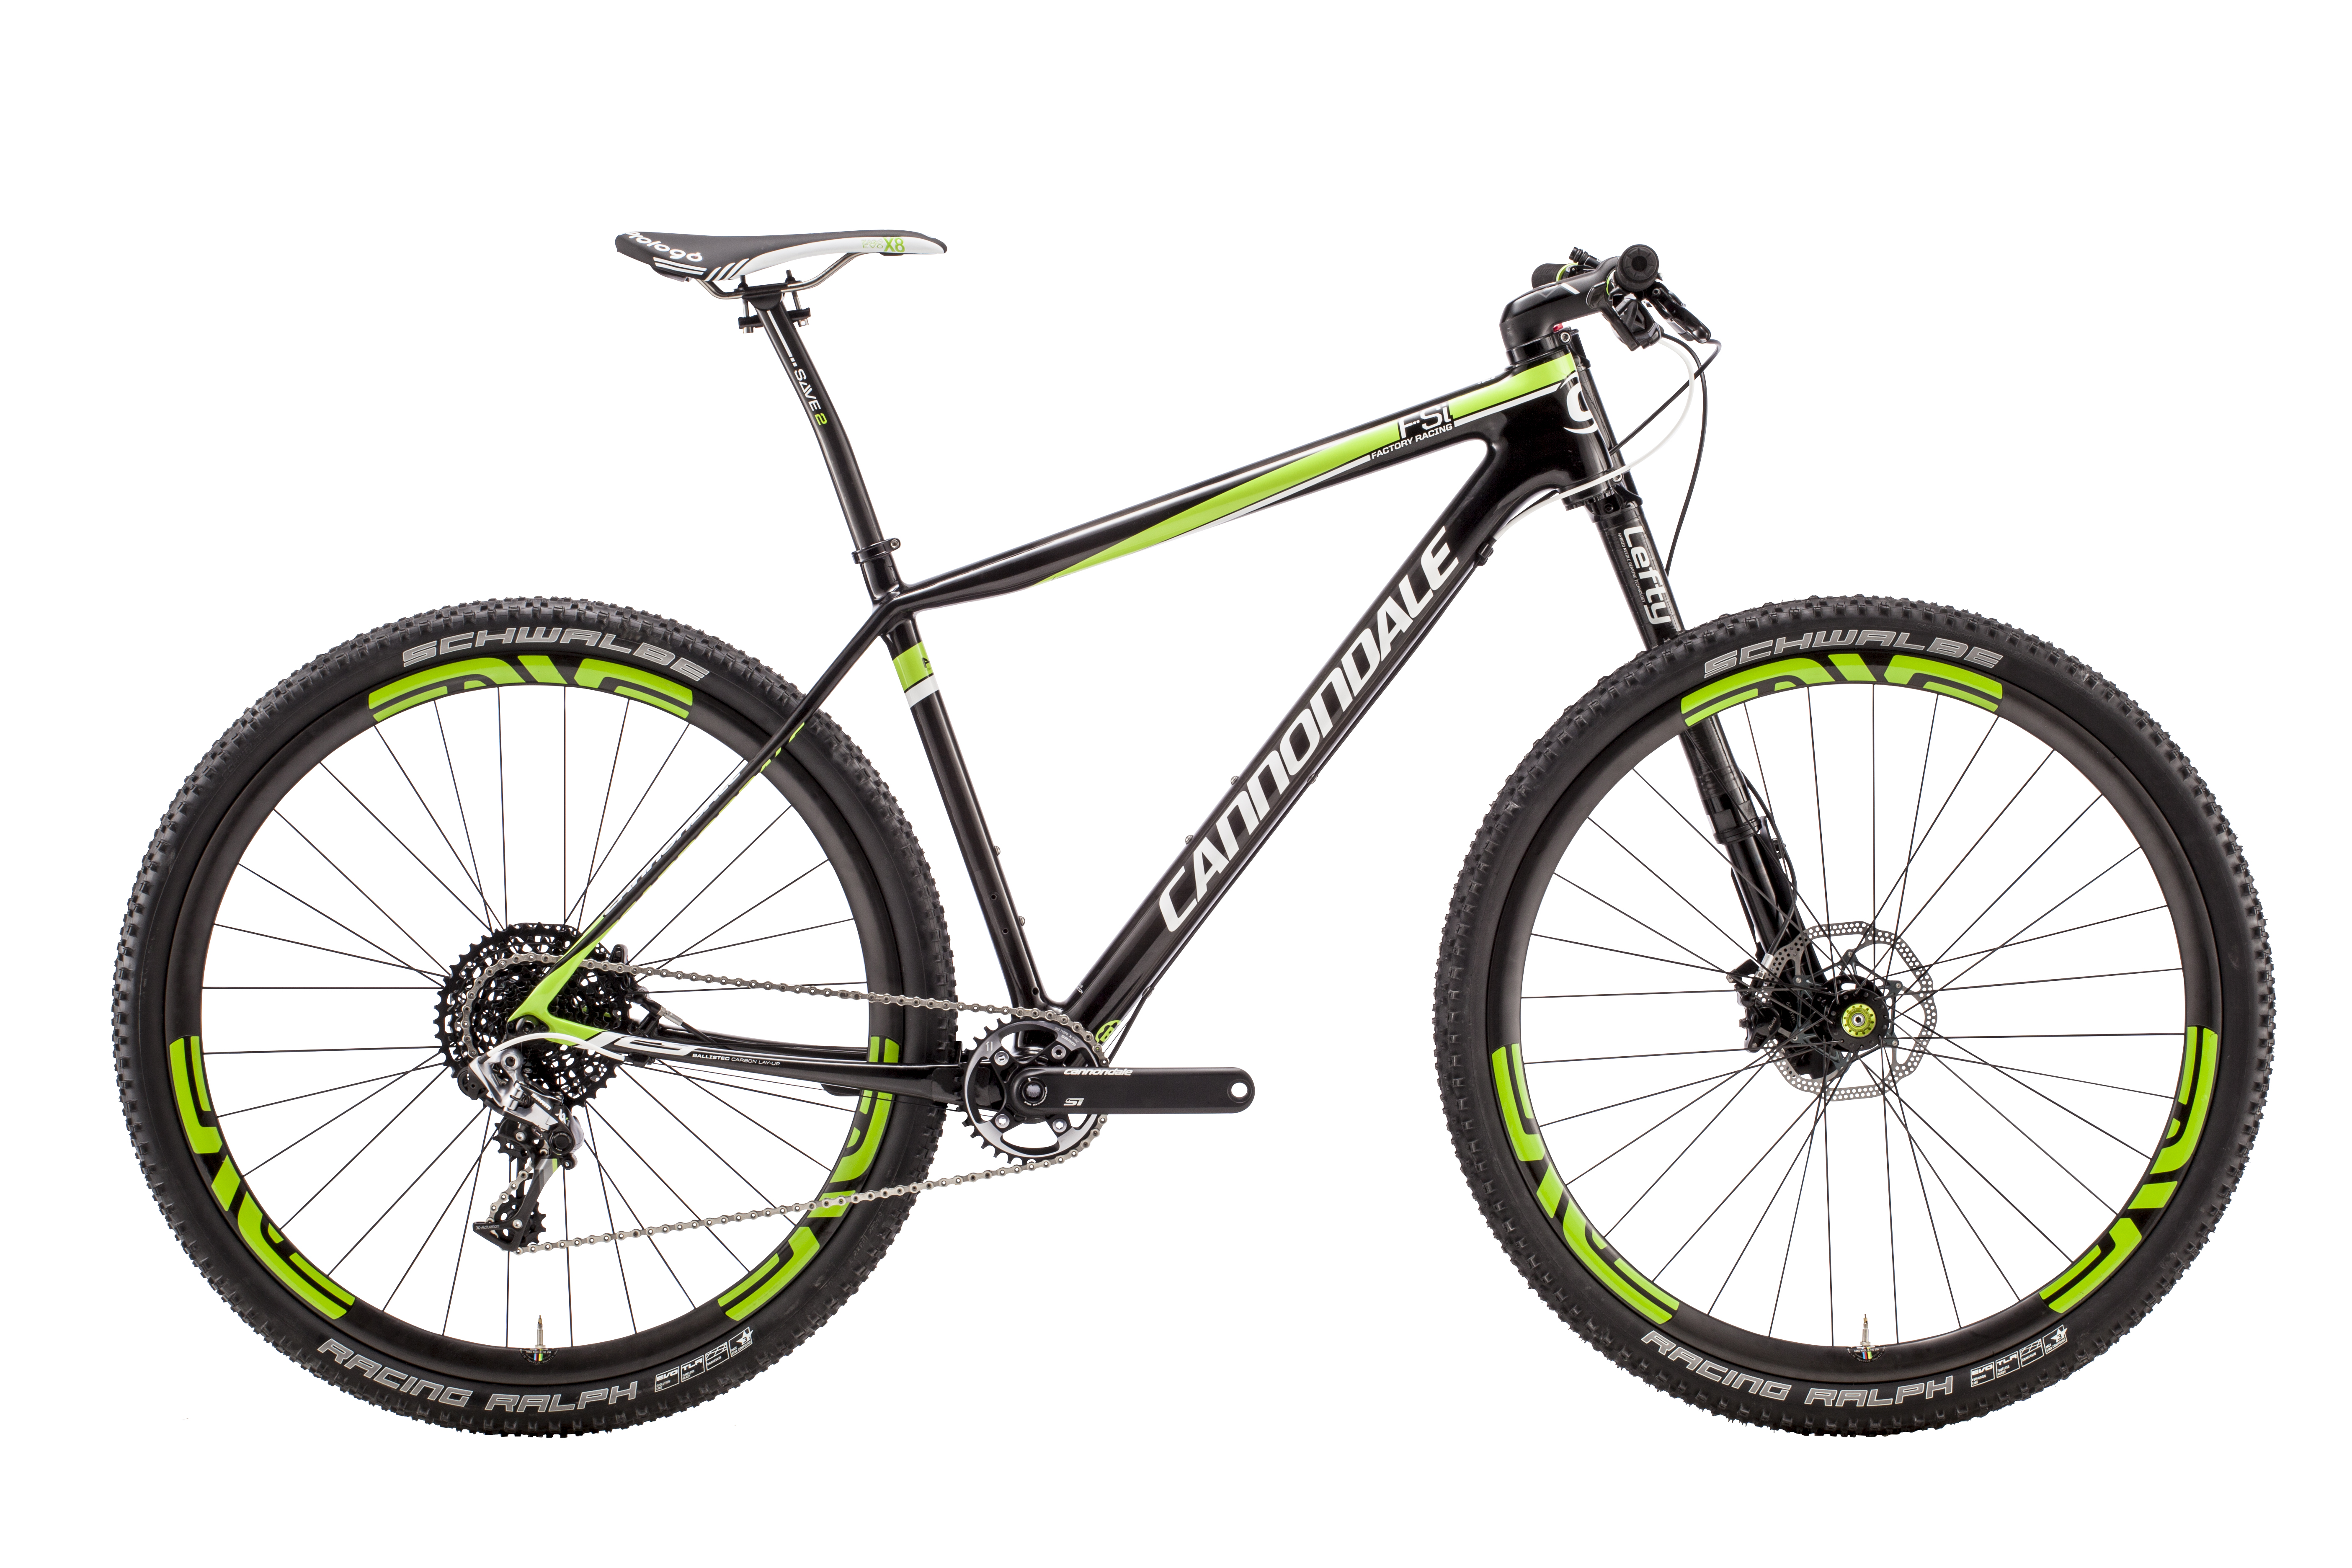 The Cannondale F-Si Carbon 29 Team